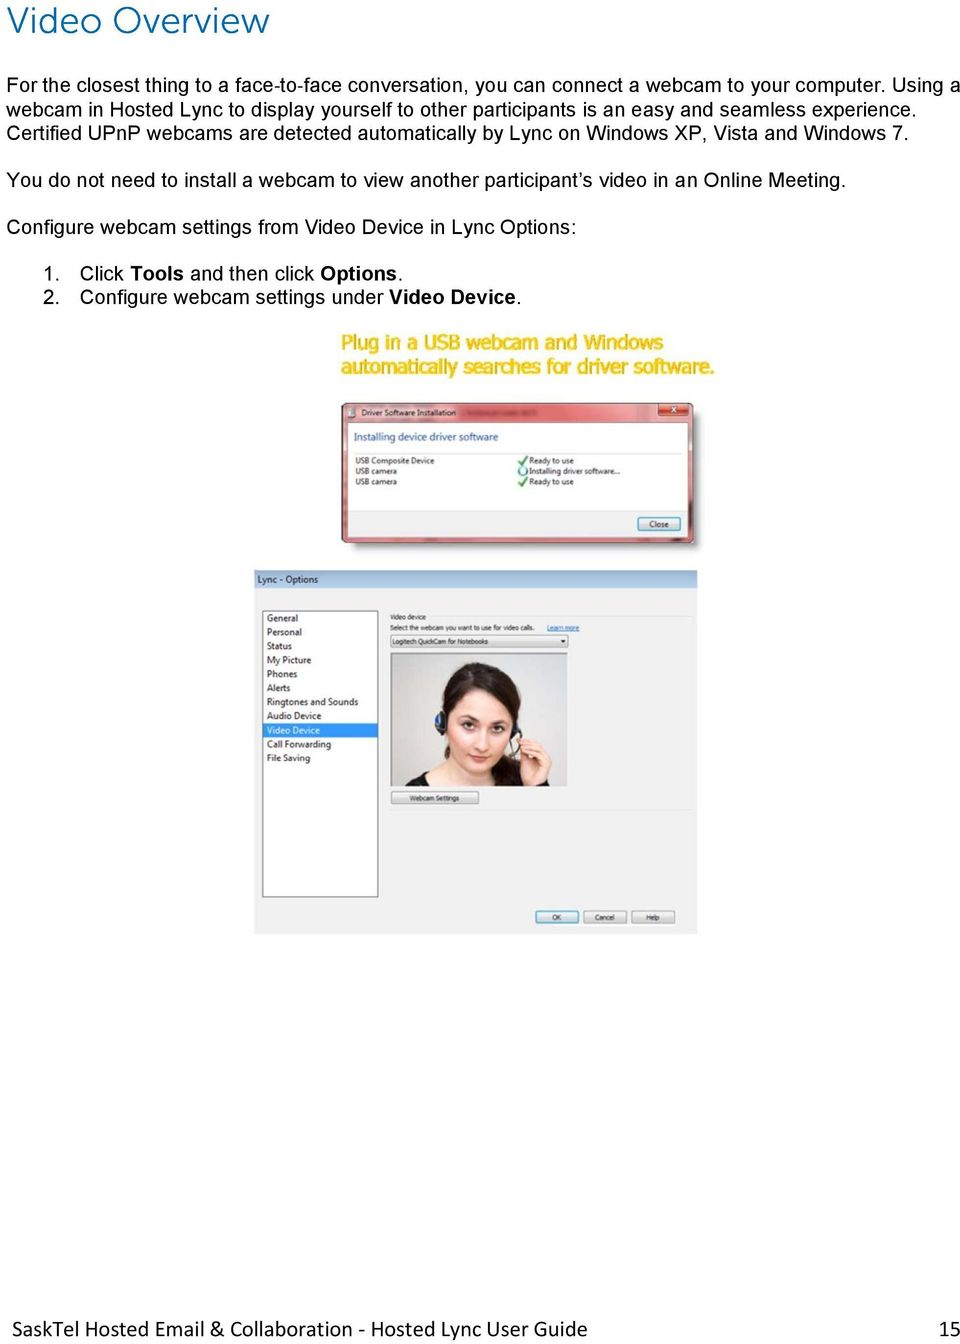 Certified UPnP webcams are detected automatically by Lync on Windows XP, Vista and Windows 7.